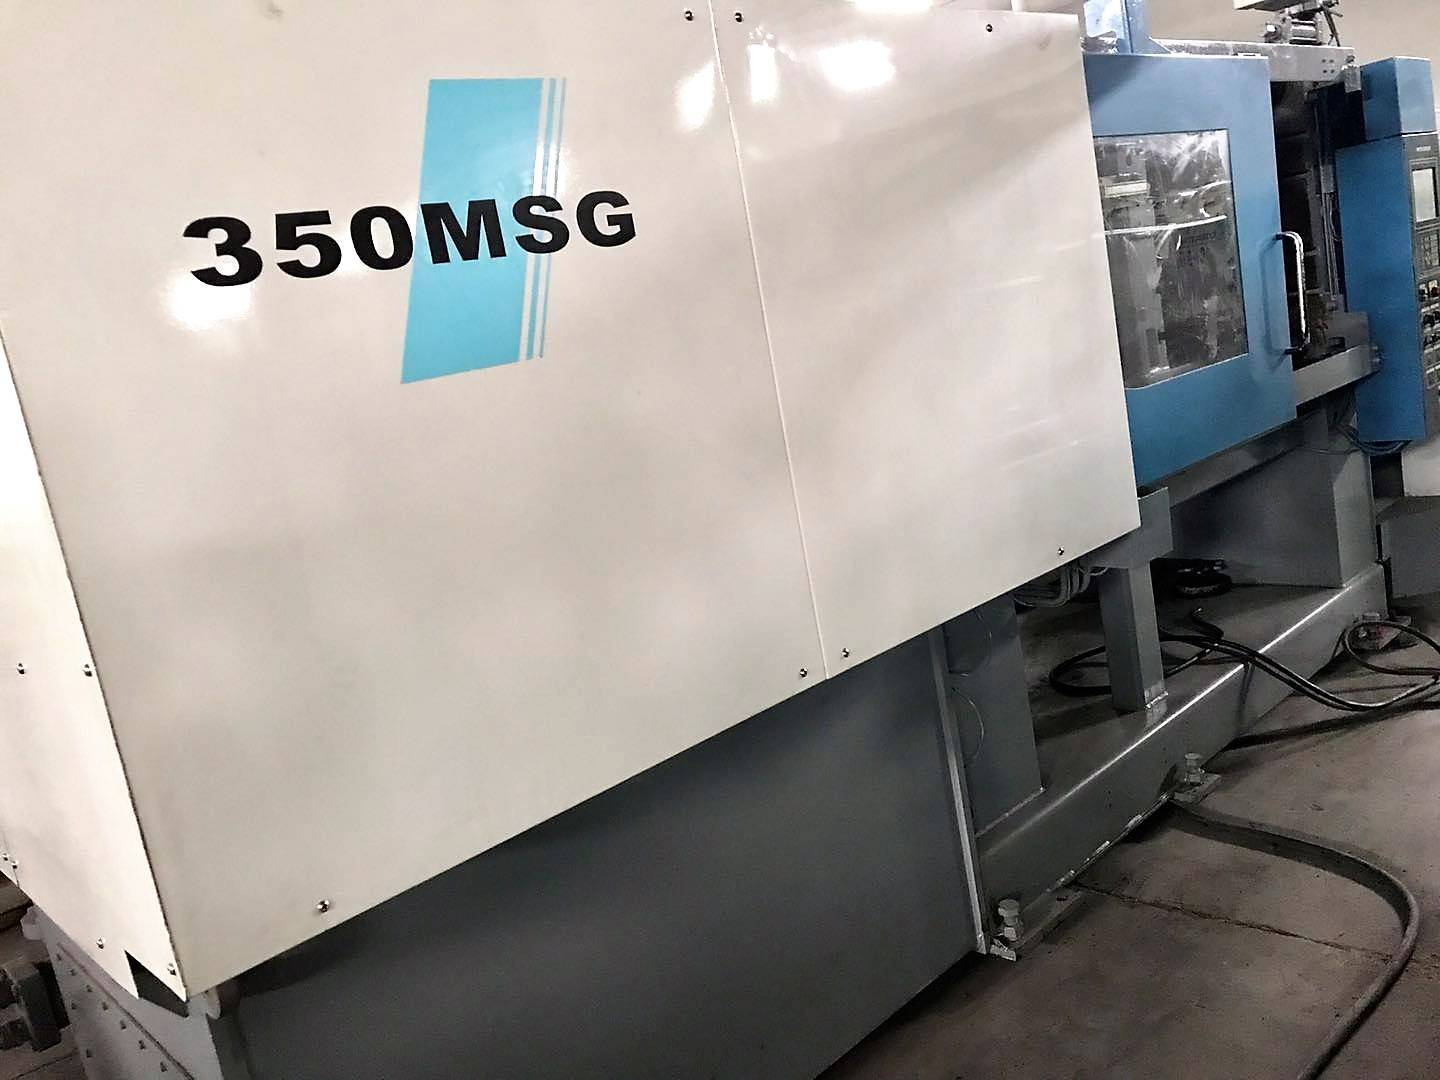 Mitsubishi 350t (350MSG) used Plastic injection molding machine Featured Image